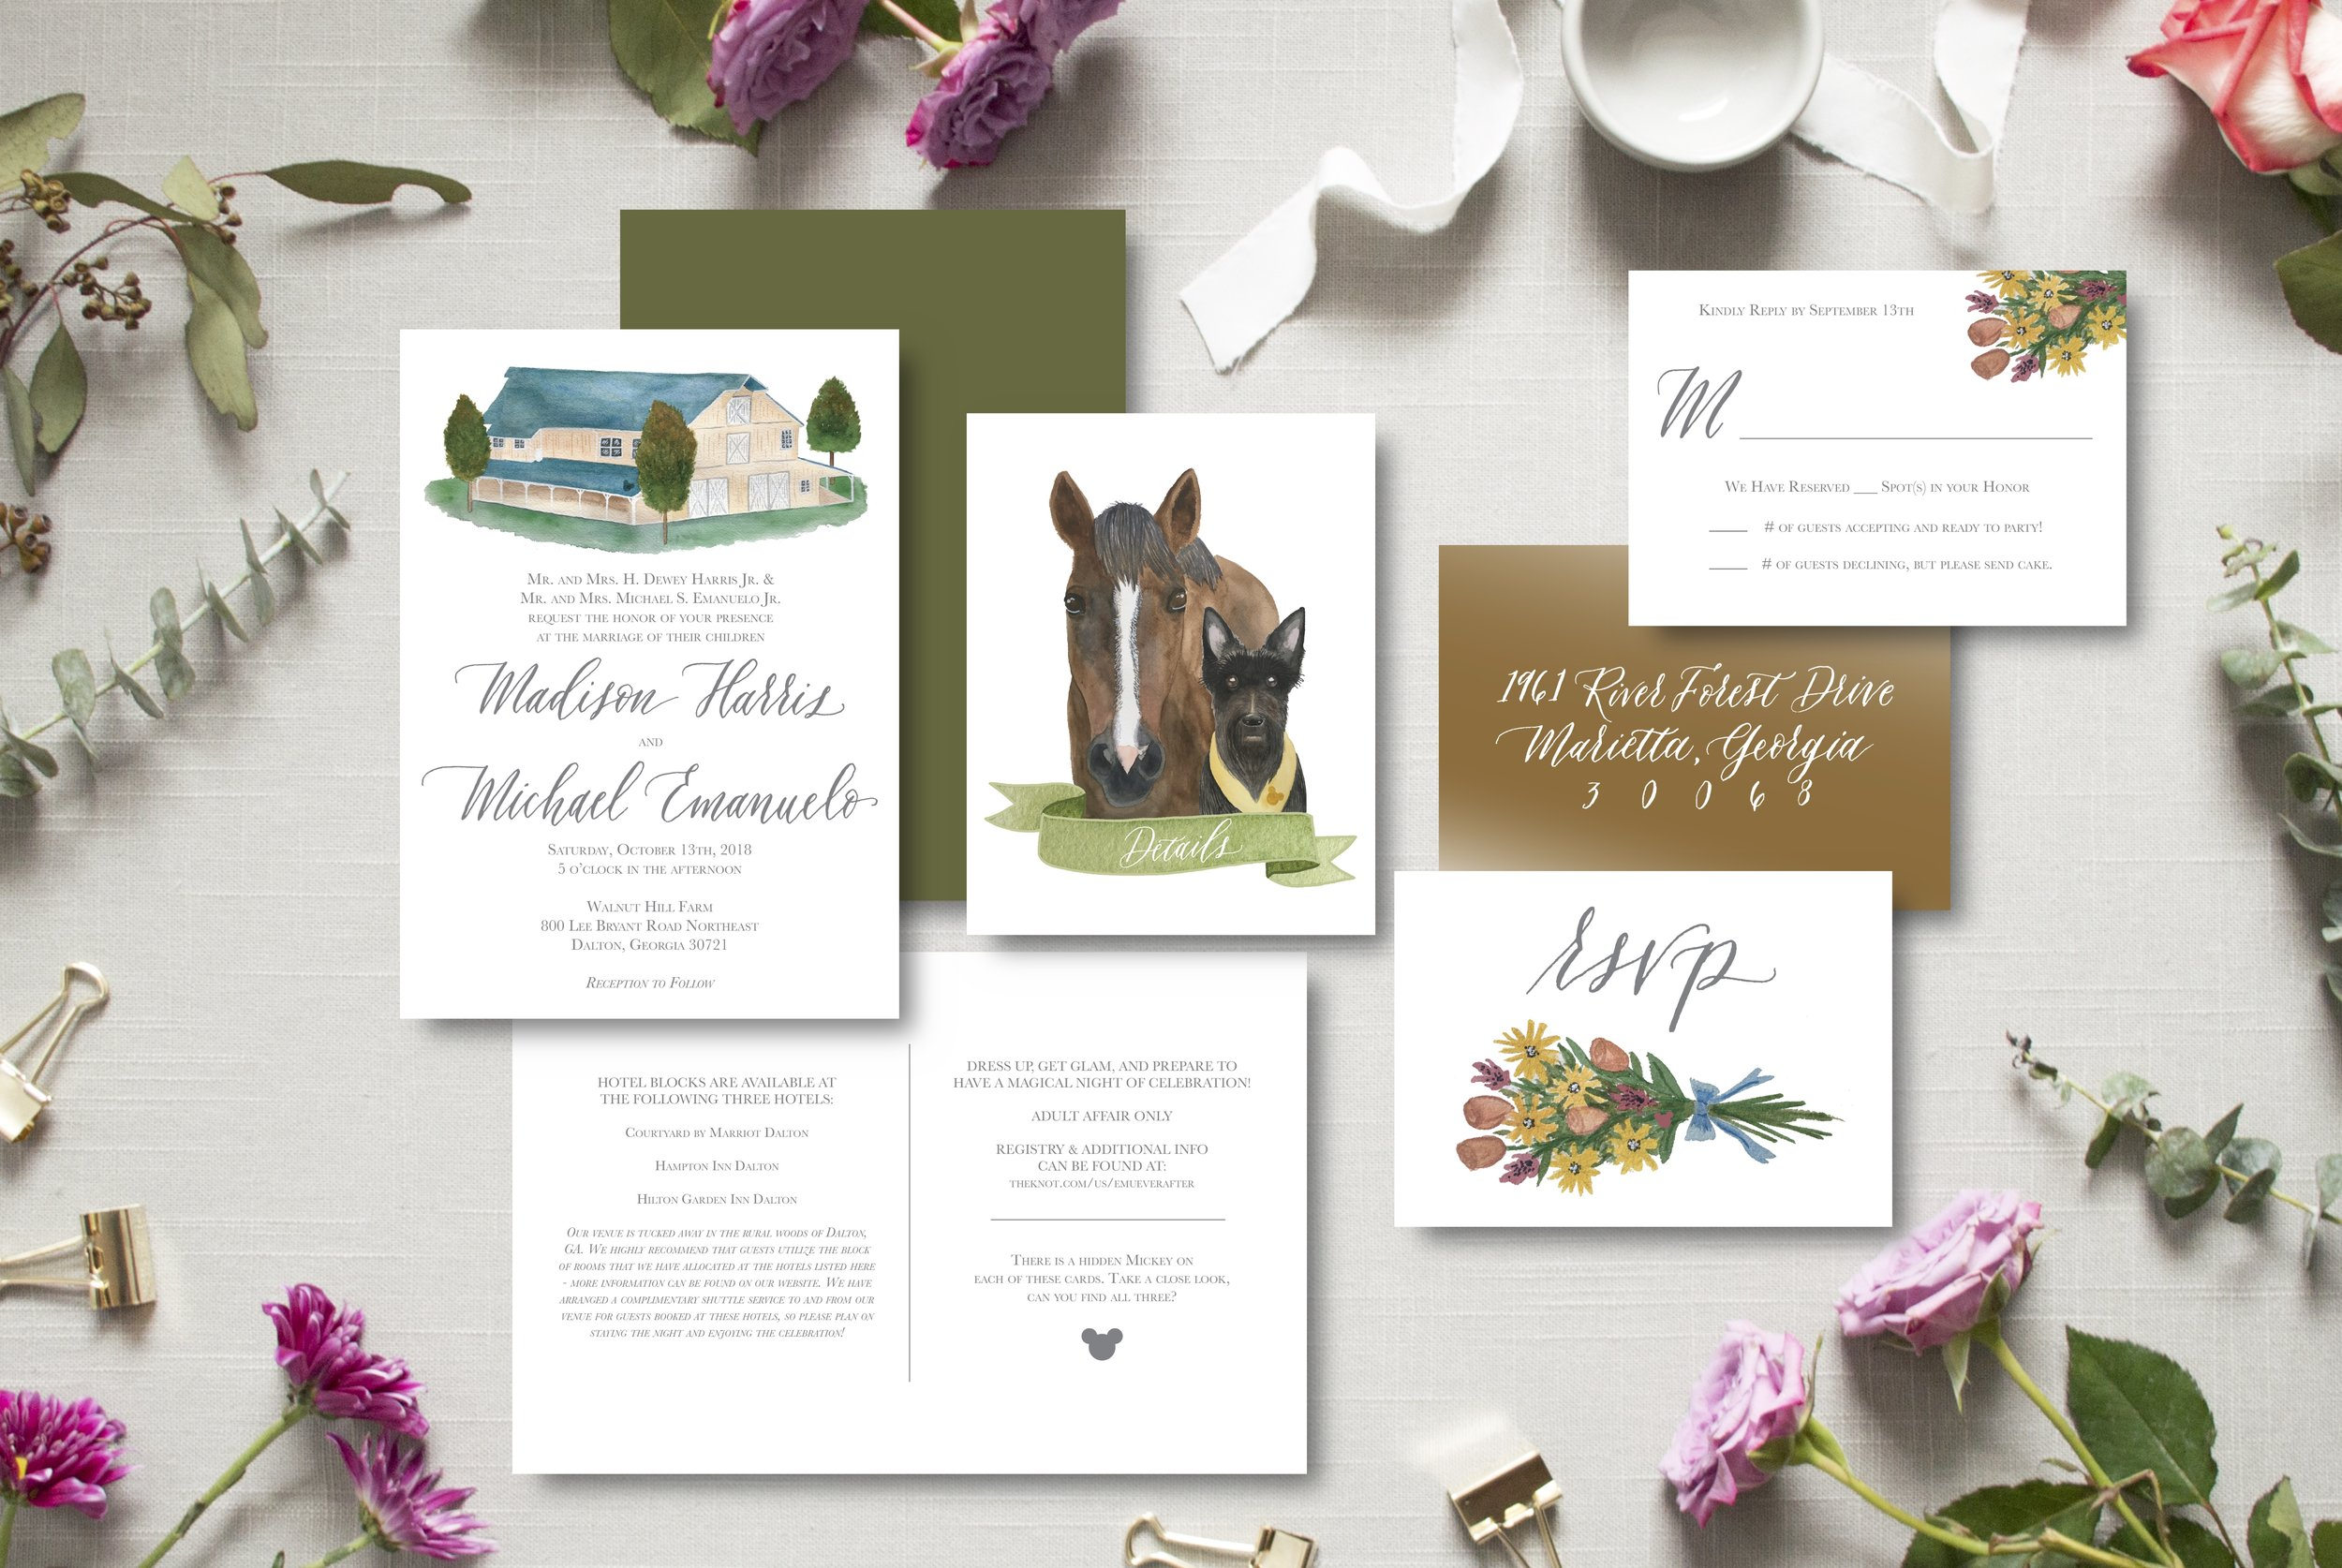 madison & michael's suite featured their darling pets on the front of their folded details card! Such a fun elements in the invitation suite, especially because their pets are so important to them and weren't actually present on the day of the wedding.